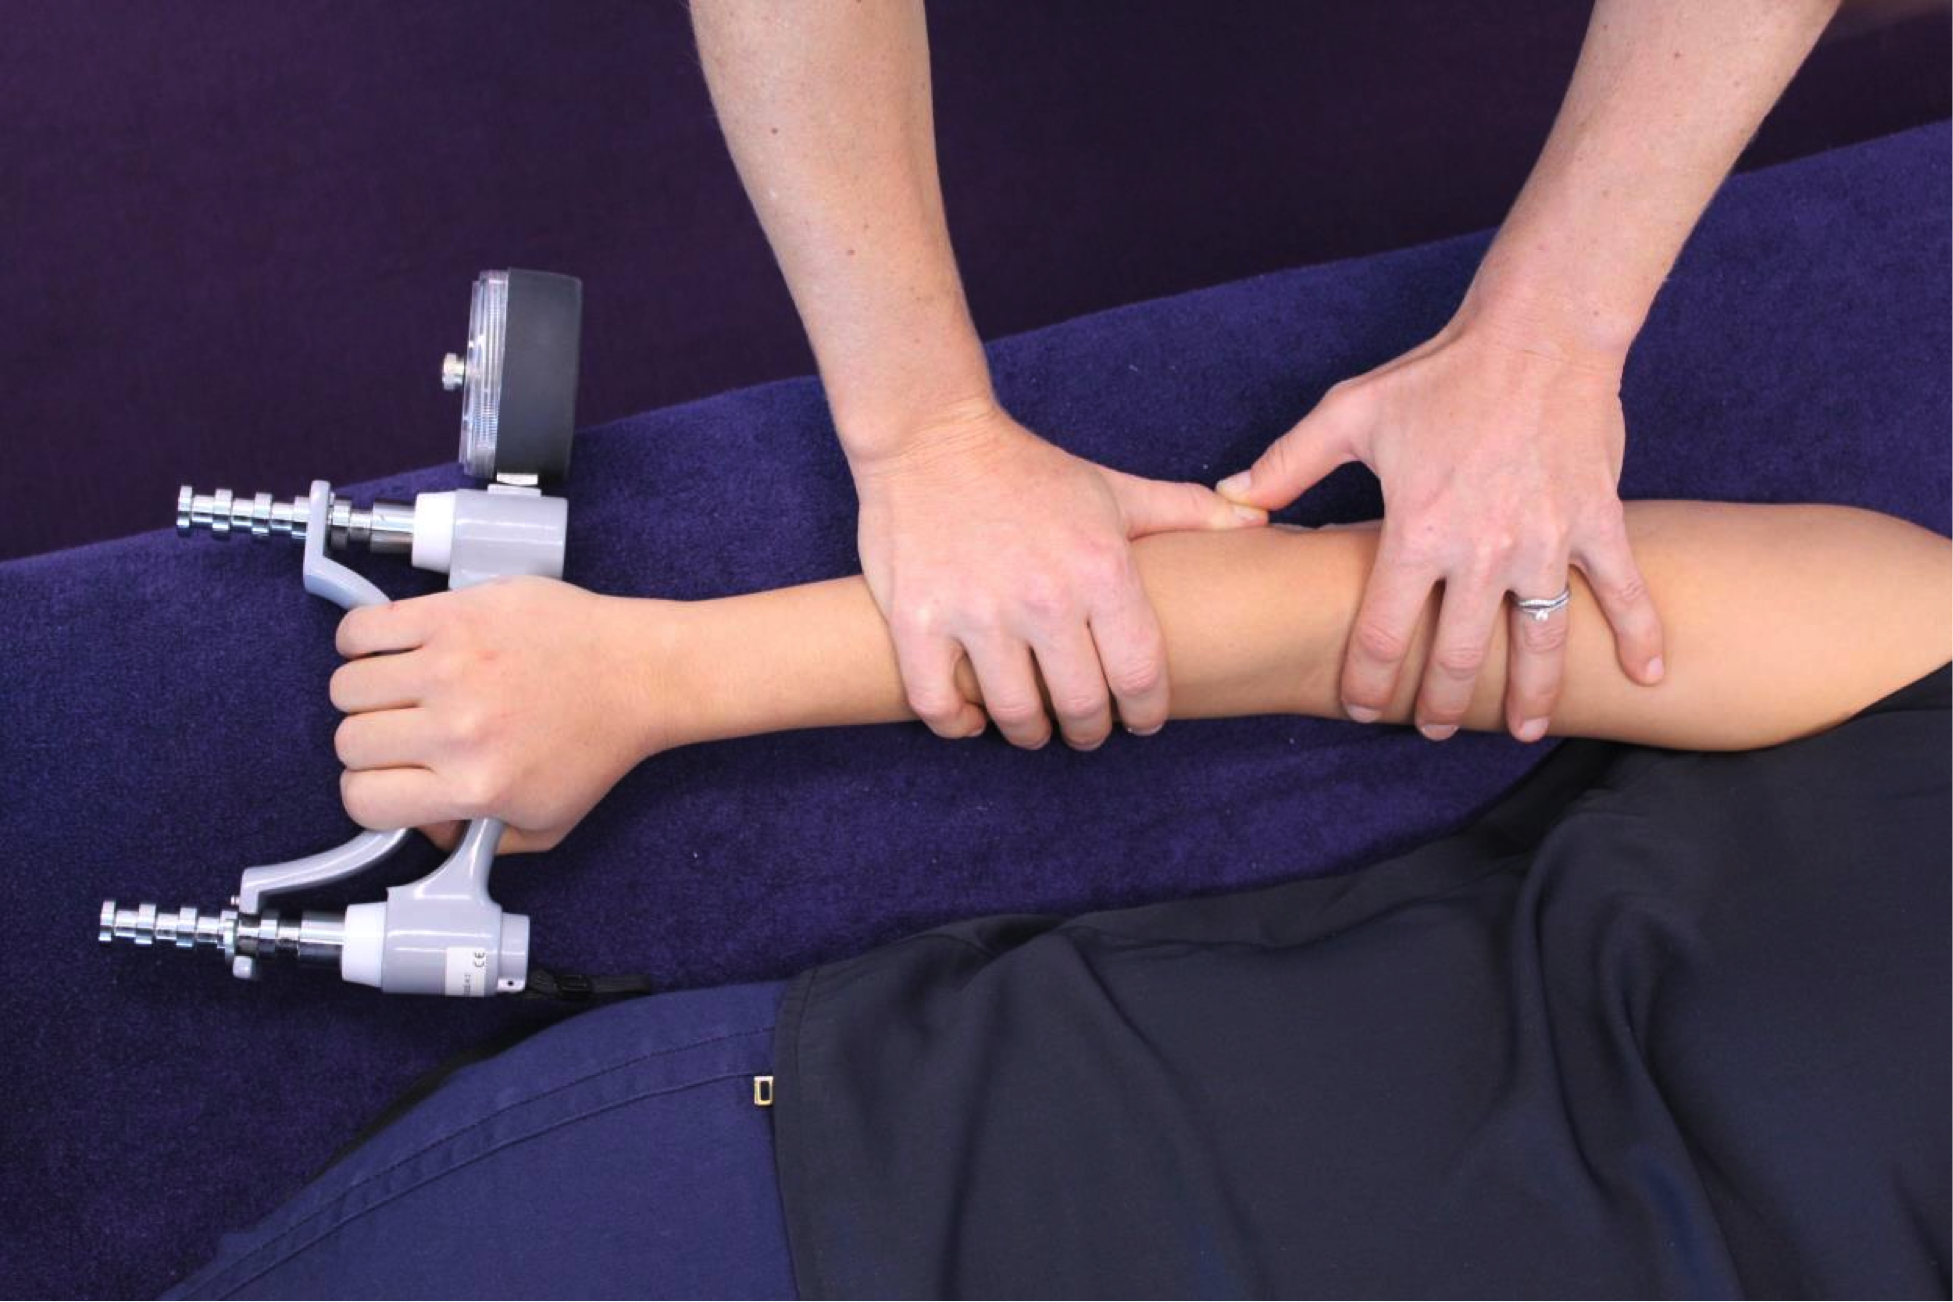 manual therapy, lateral elbow pain, physical therapy